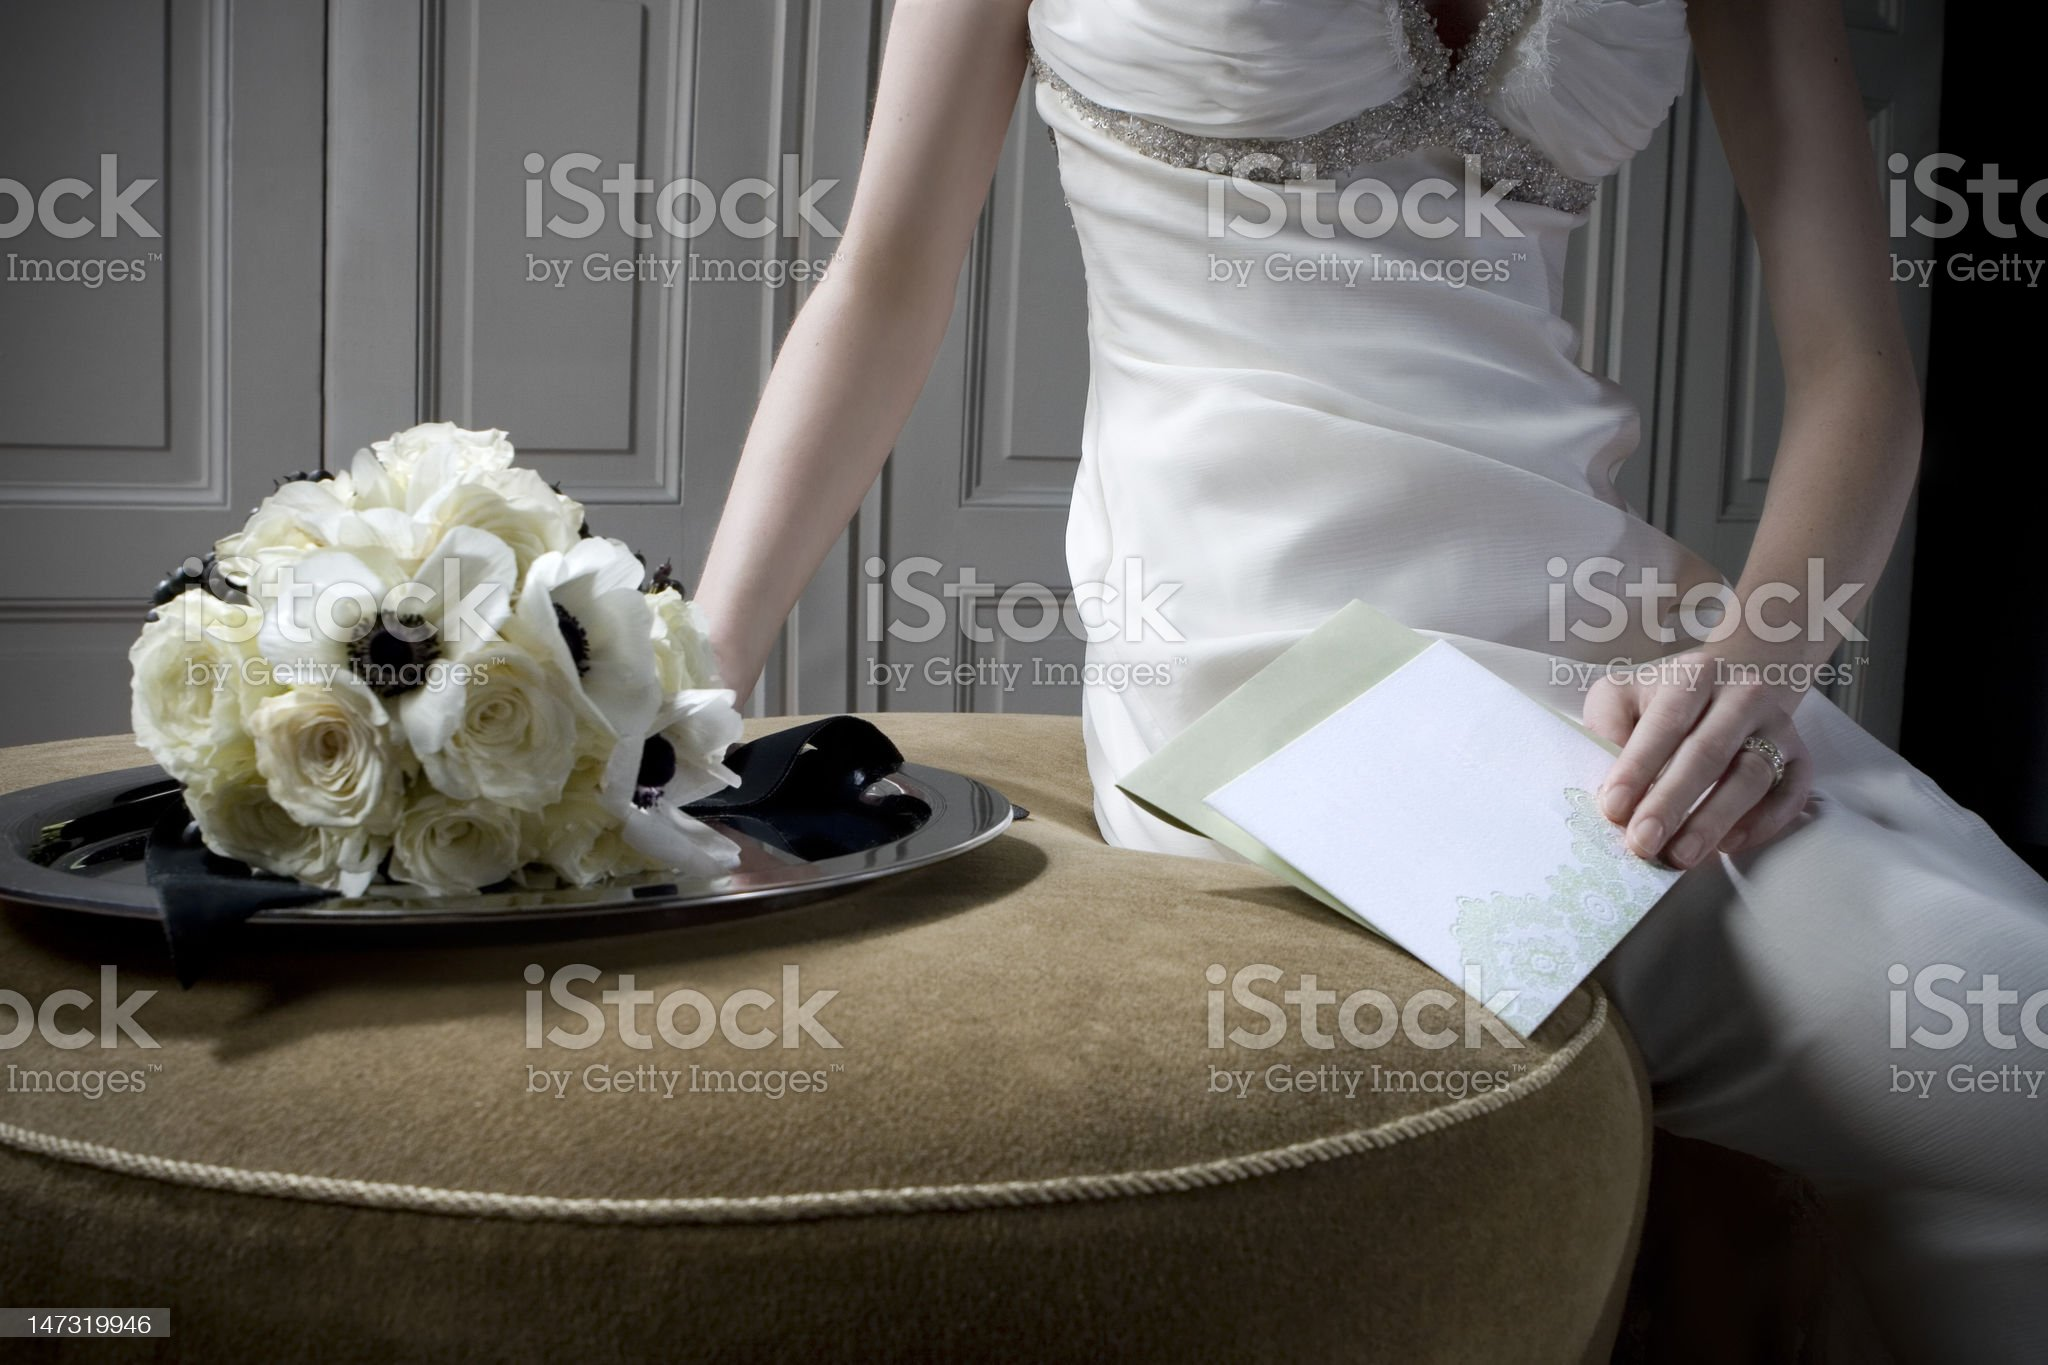 Flowers, a wedding dress and blank stationary. royalty-free stock photo